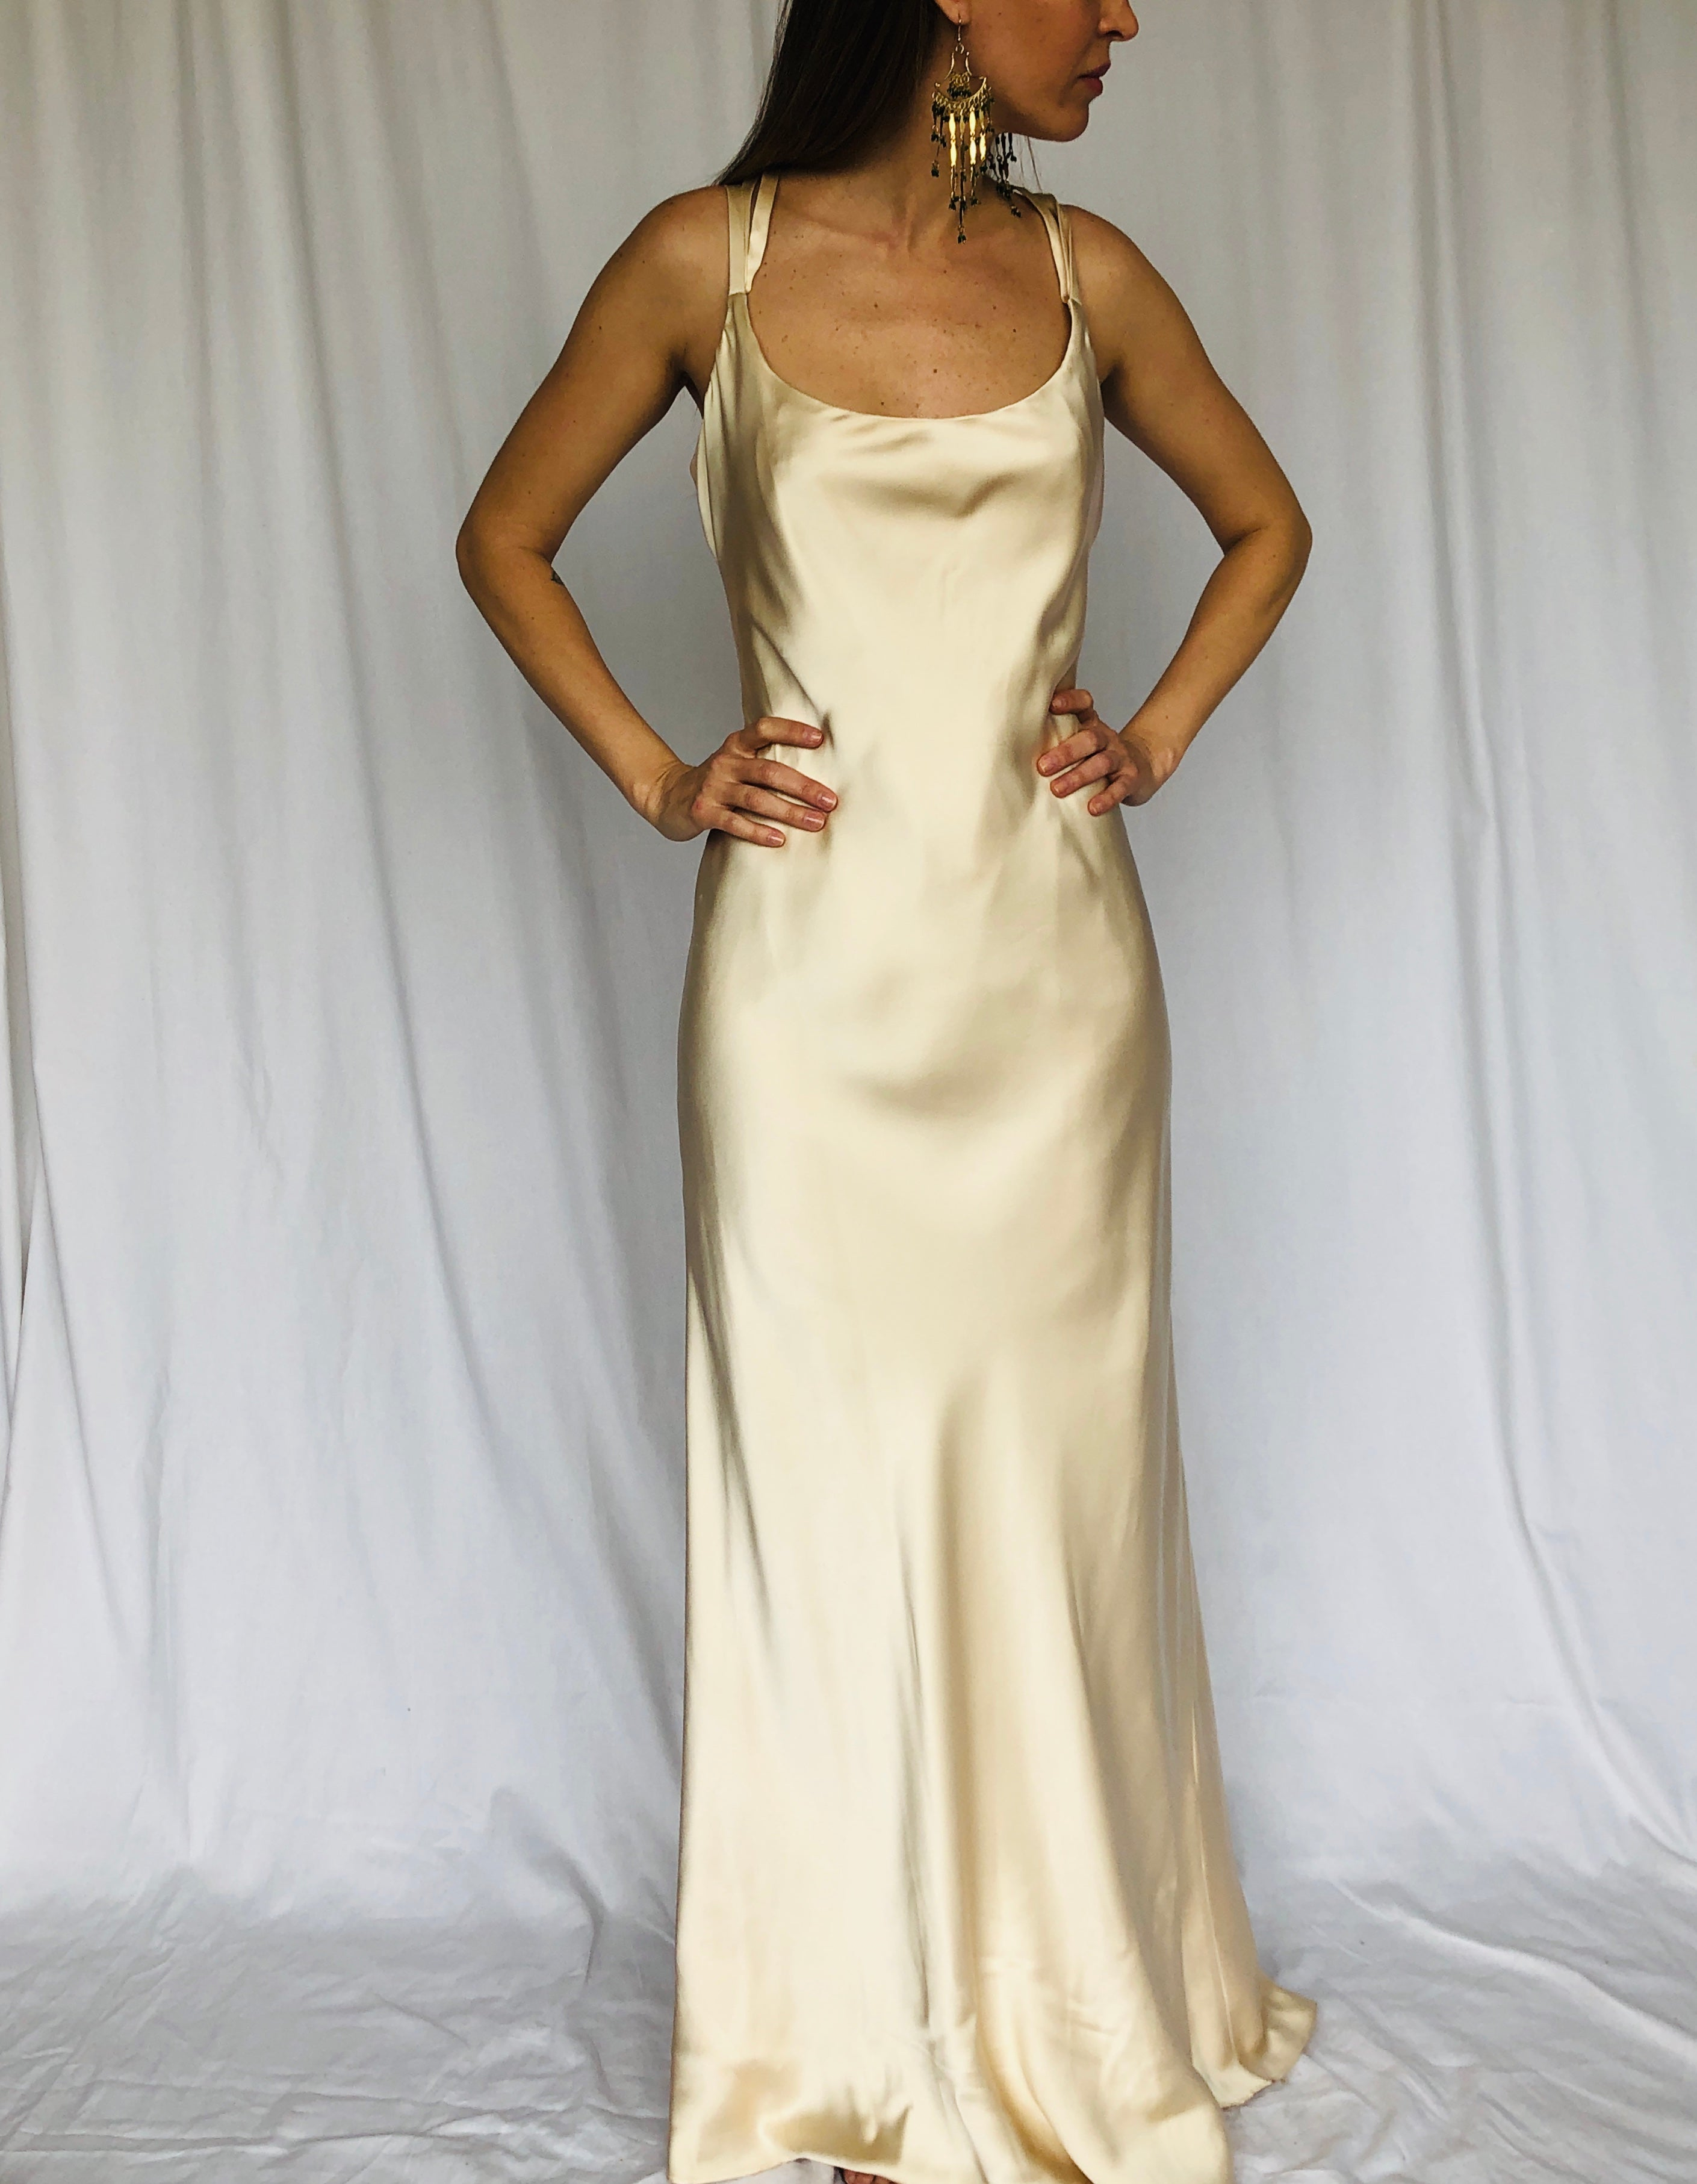 Vintage Saks Fifth Avenue Travilla Off White Cream Silk Slip Maxi Dress Wedding Gown S 6